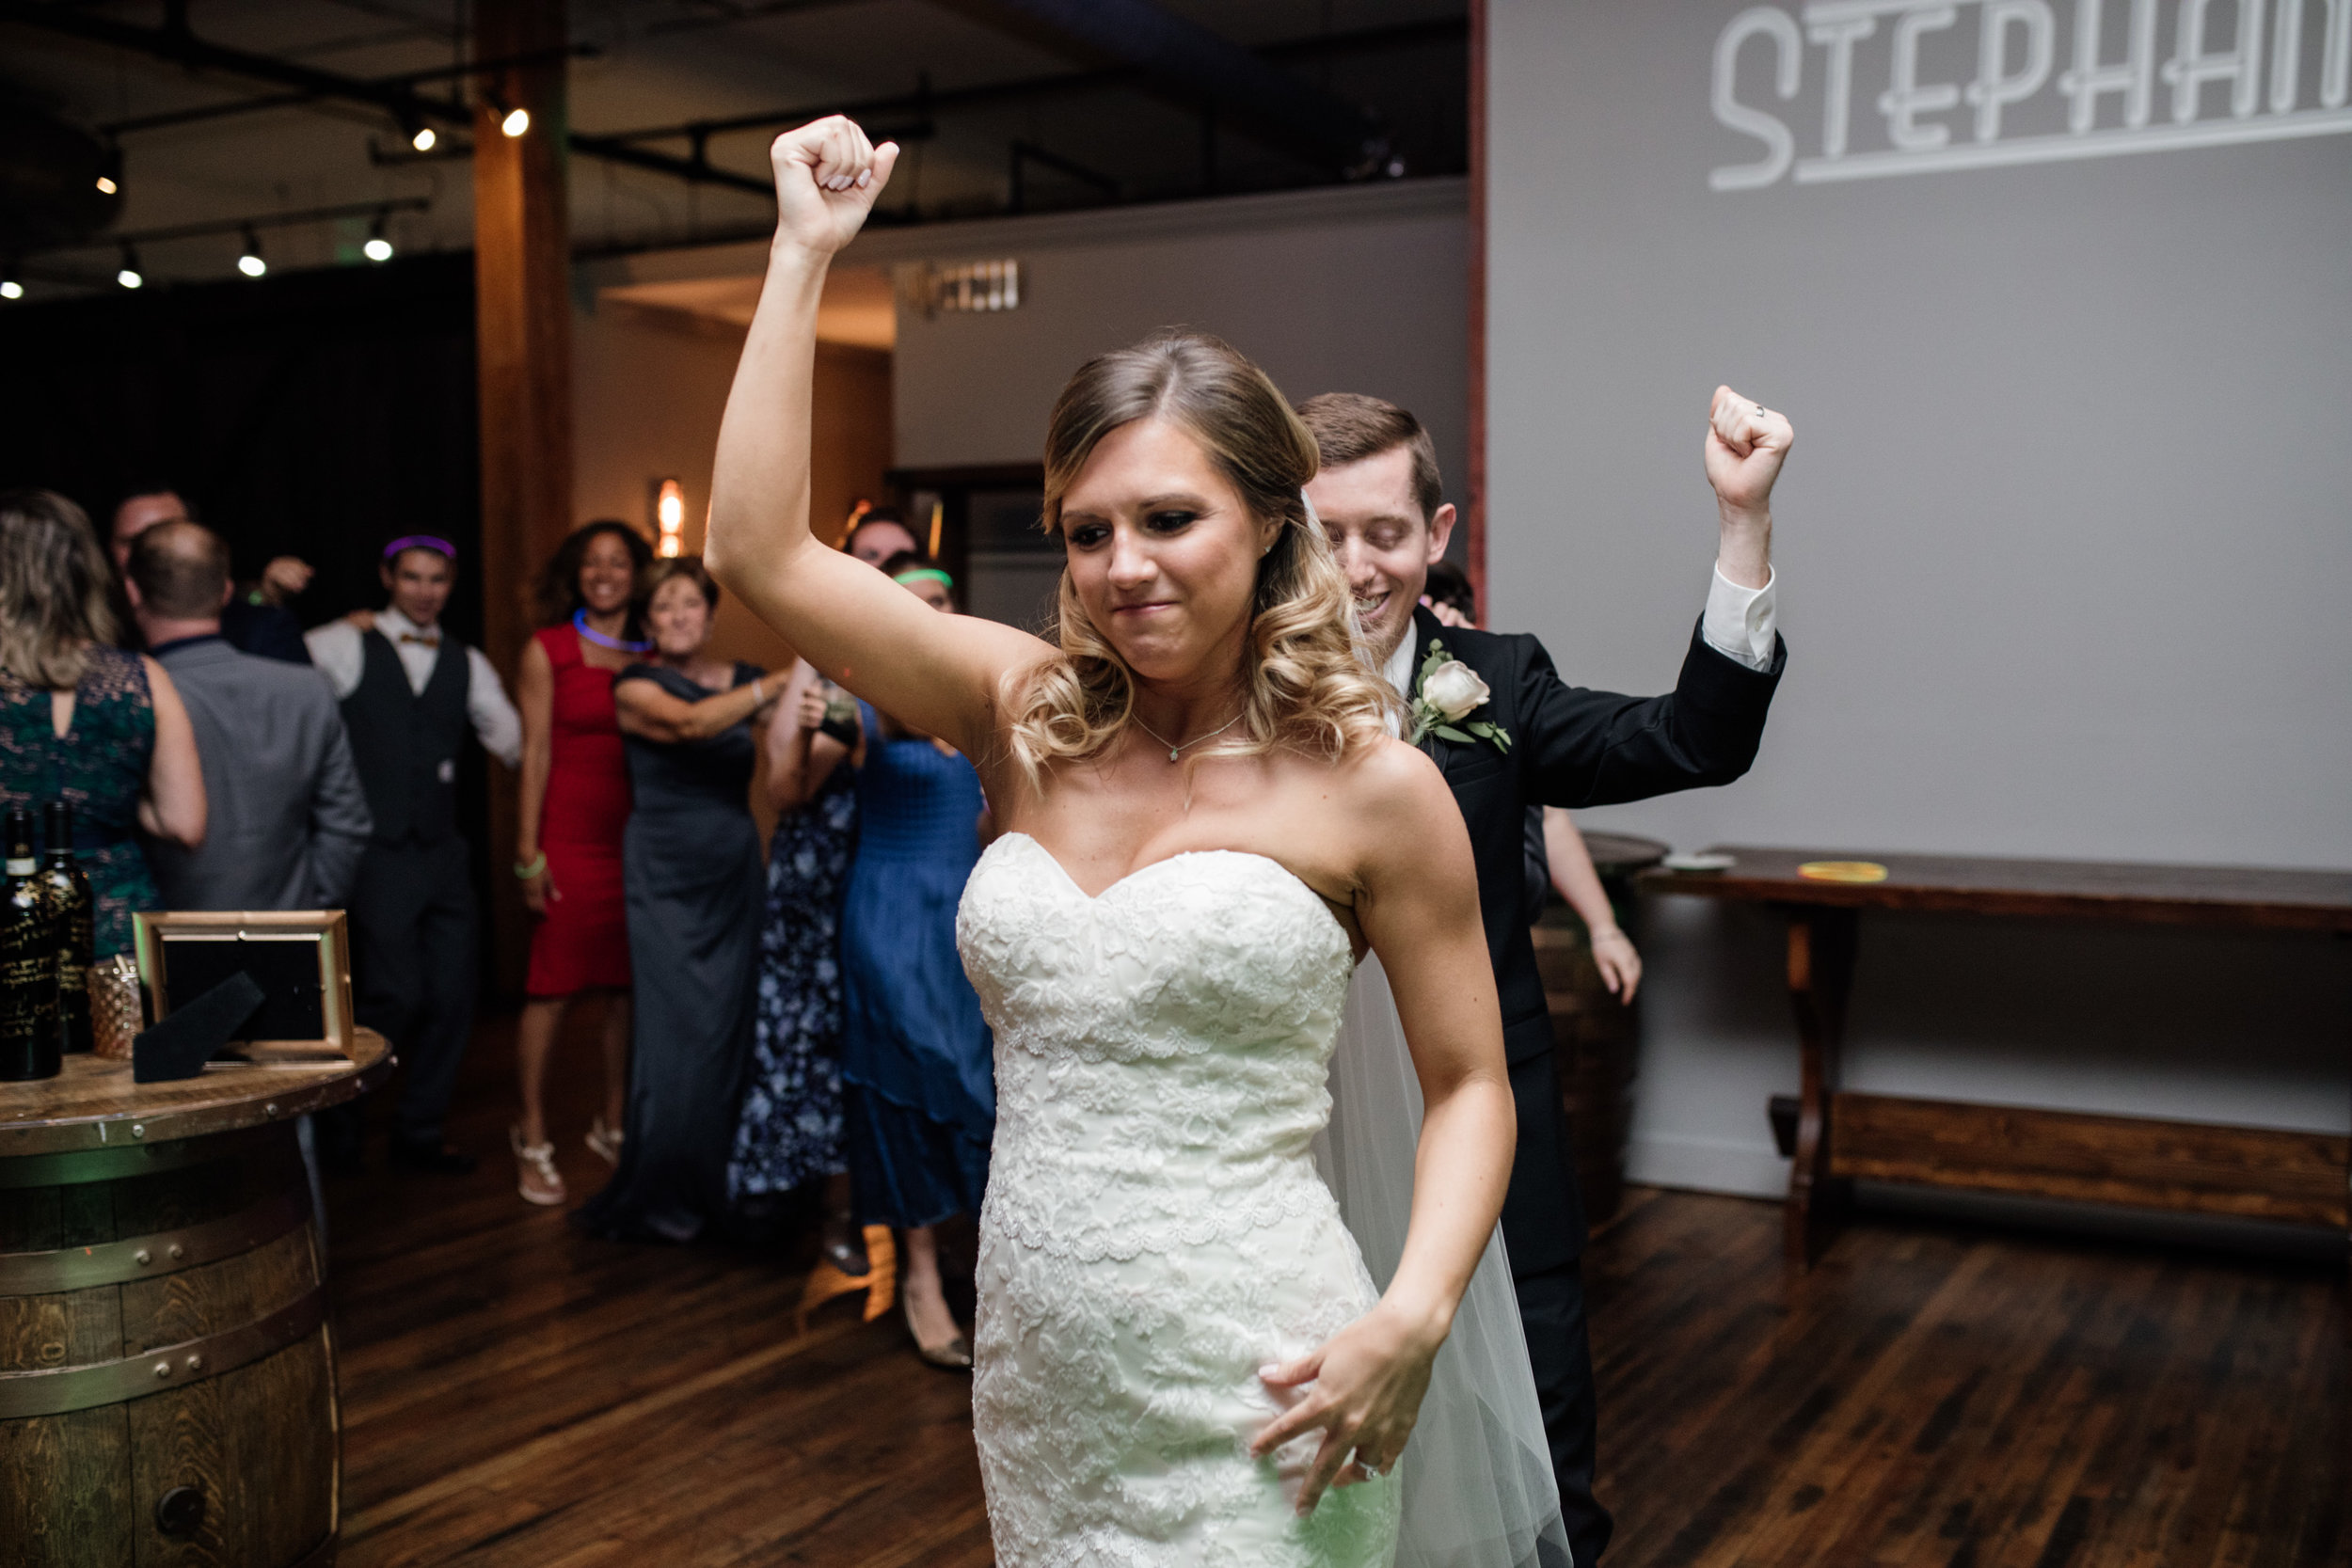 StephenPaynePhotography_Stephaine+Jeff_WeddingBLOG-21.jpg